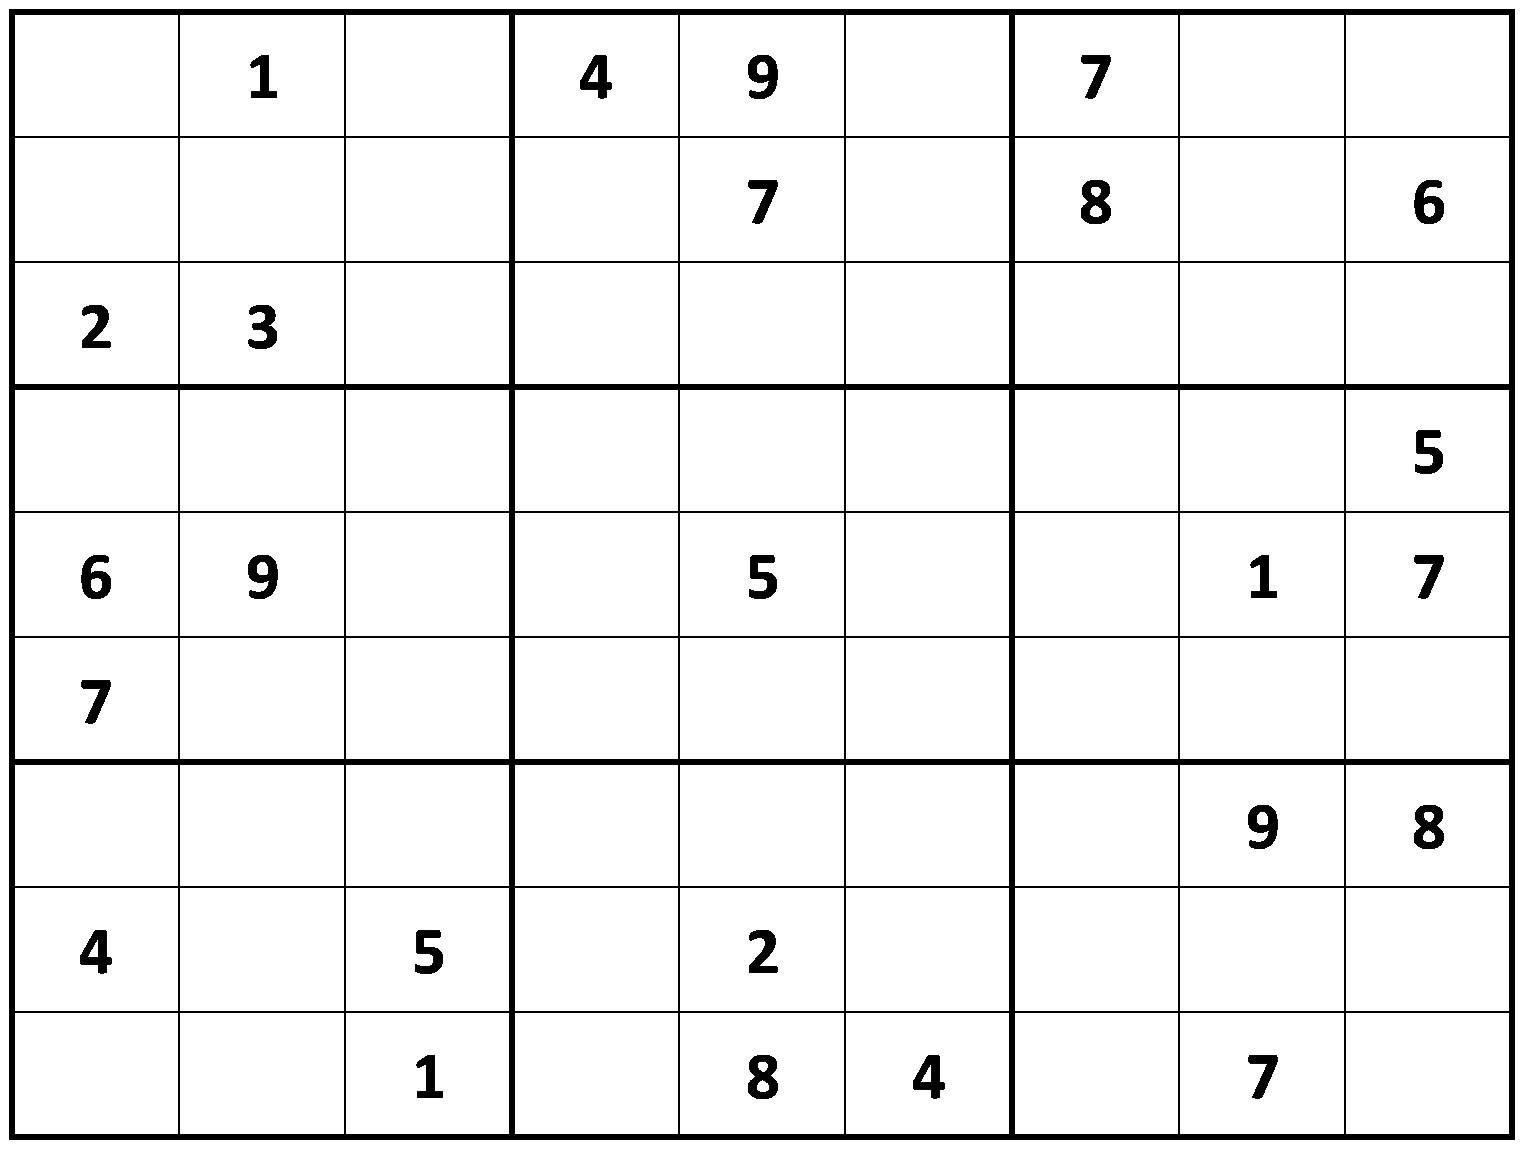 photograph relating to Mega Sudoku Printable identified as Regarding free of charge printable sudokuprintable sudoku ~ Tory Kosts